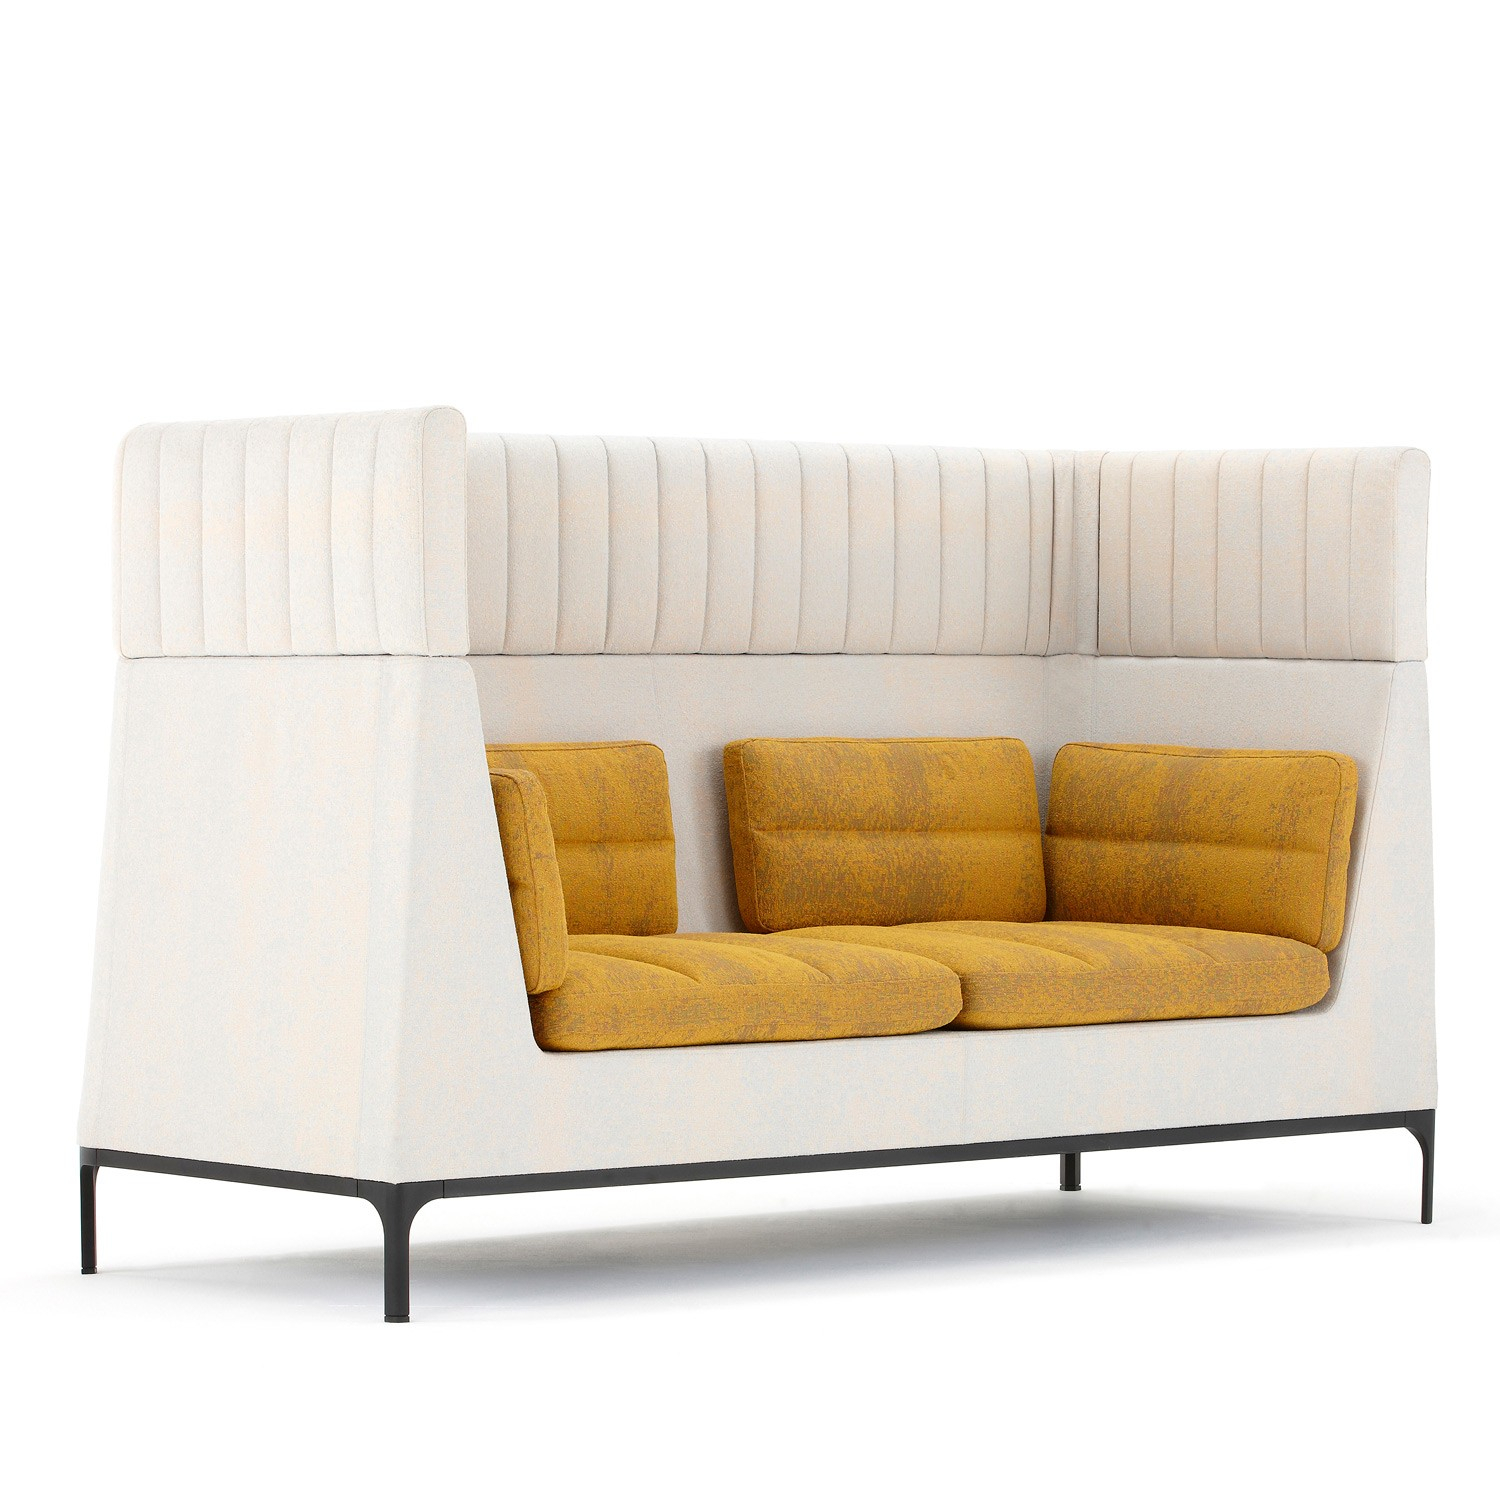 Haven High Back Sofa | Haven Acoustic Soft Seating | Apres Furniture Regarding Haven Sofa Chairs (Photo 5 of 25)